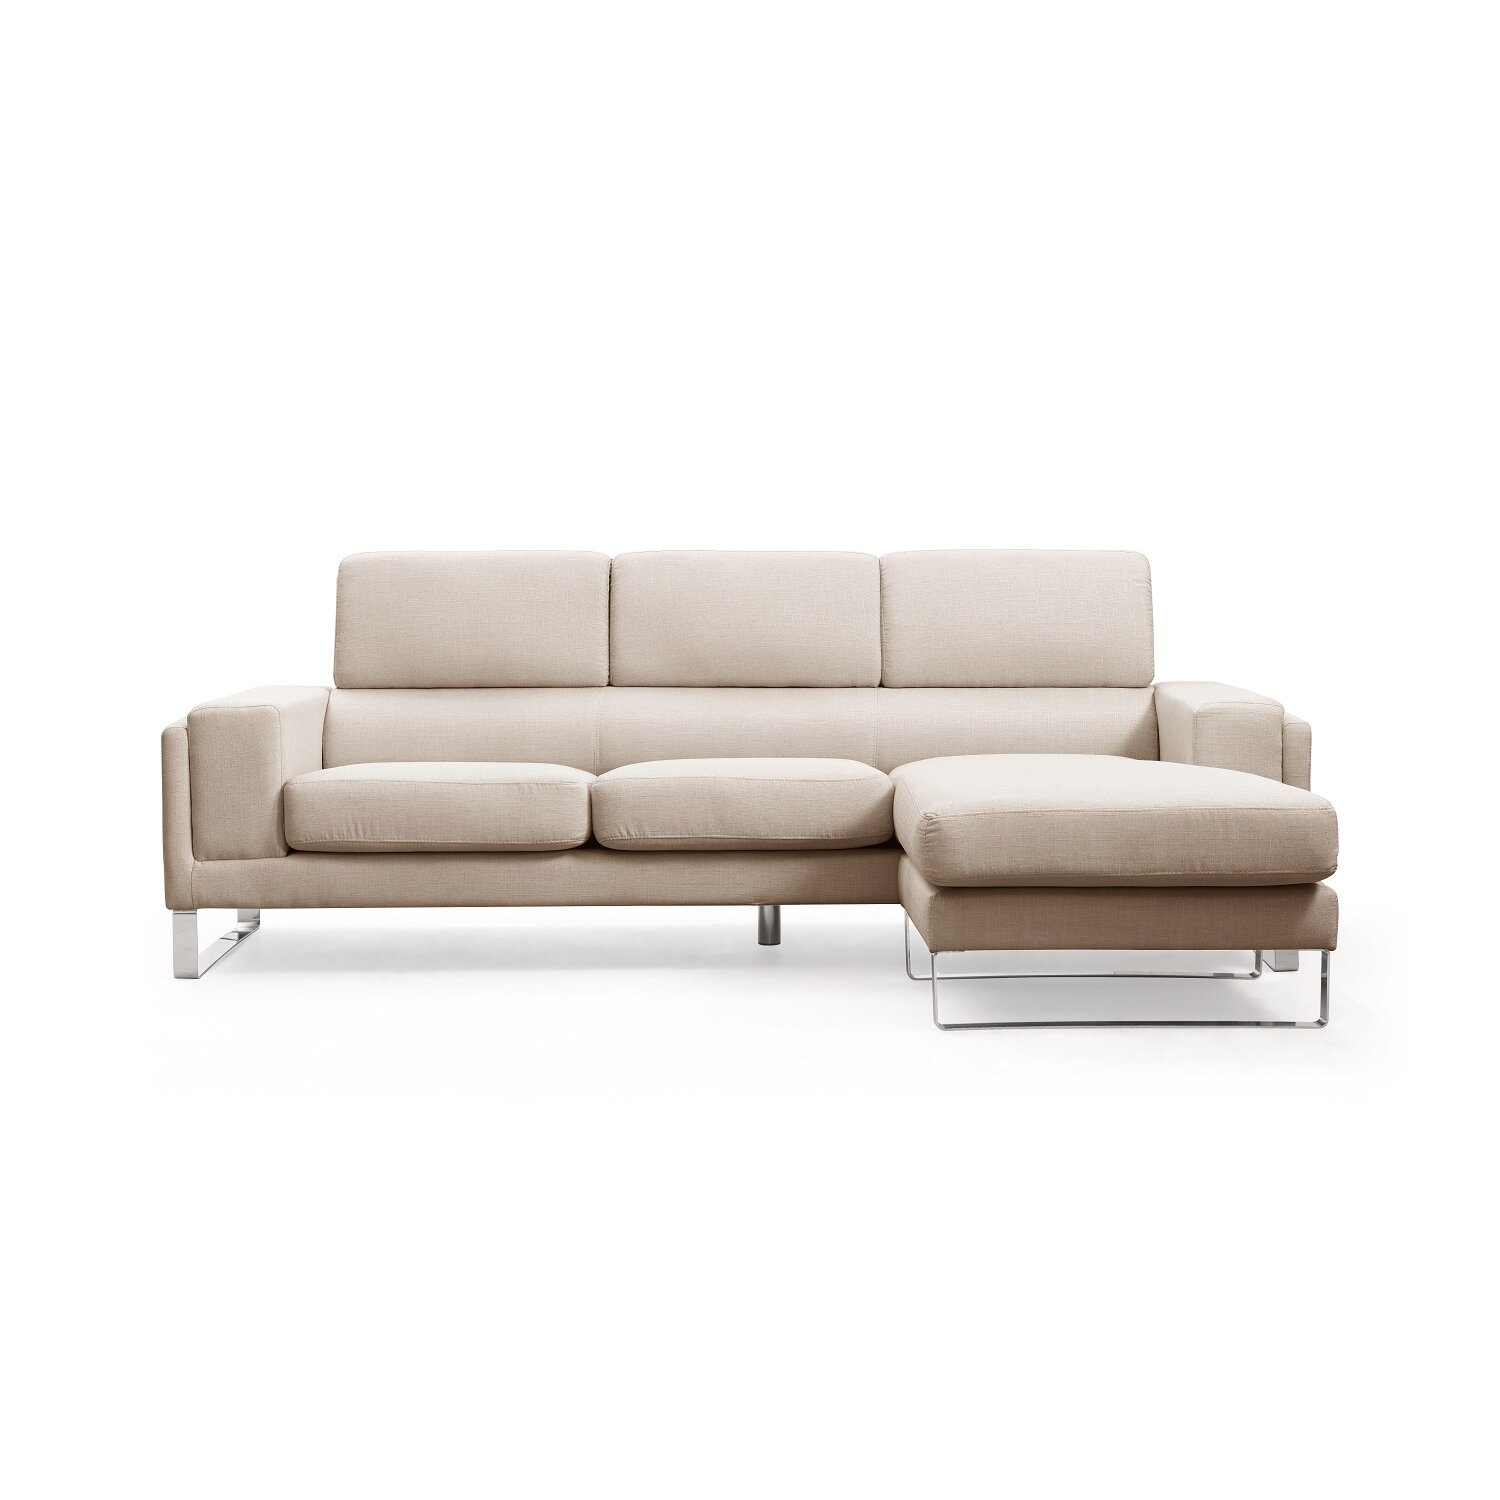 Container reversible chaise sectional wayfair for Sectional sofa reversible chaise living room furniture